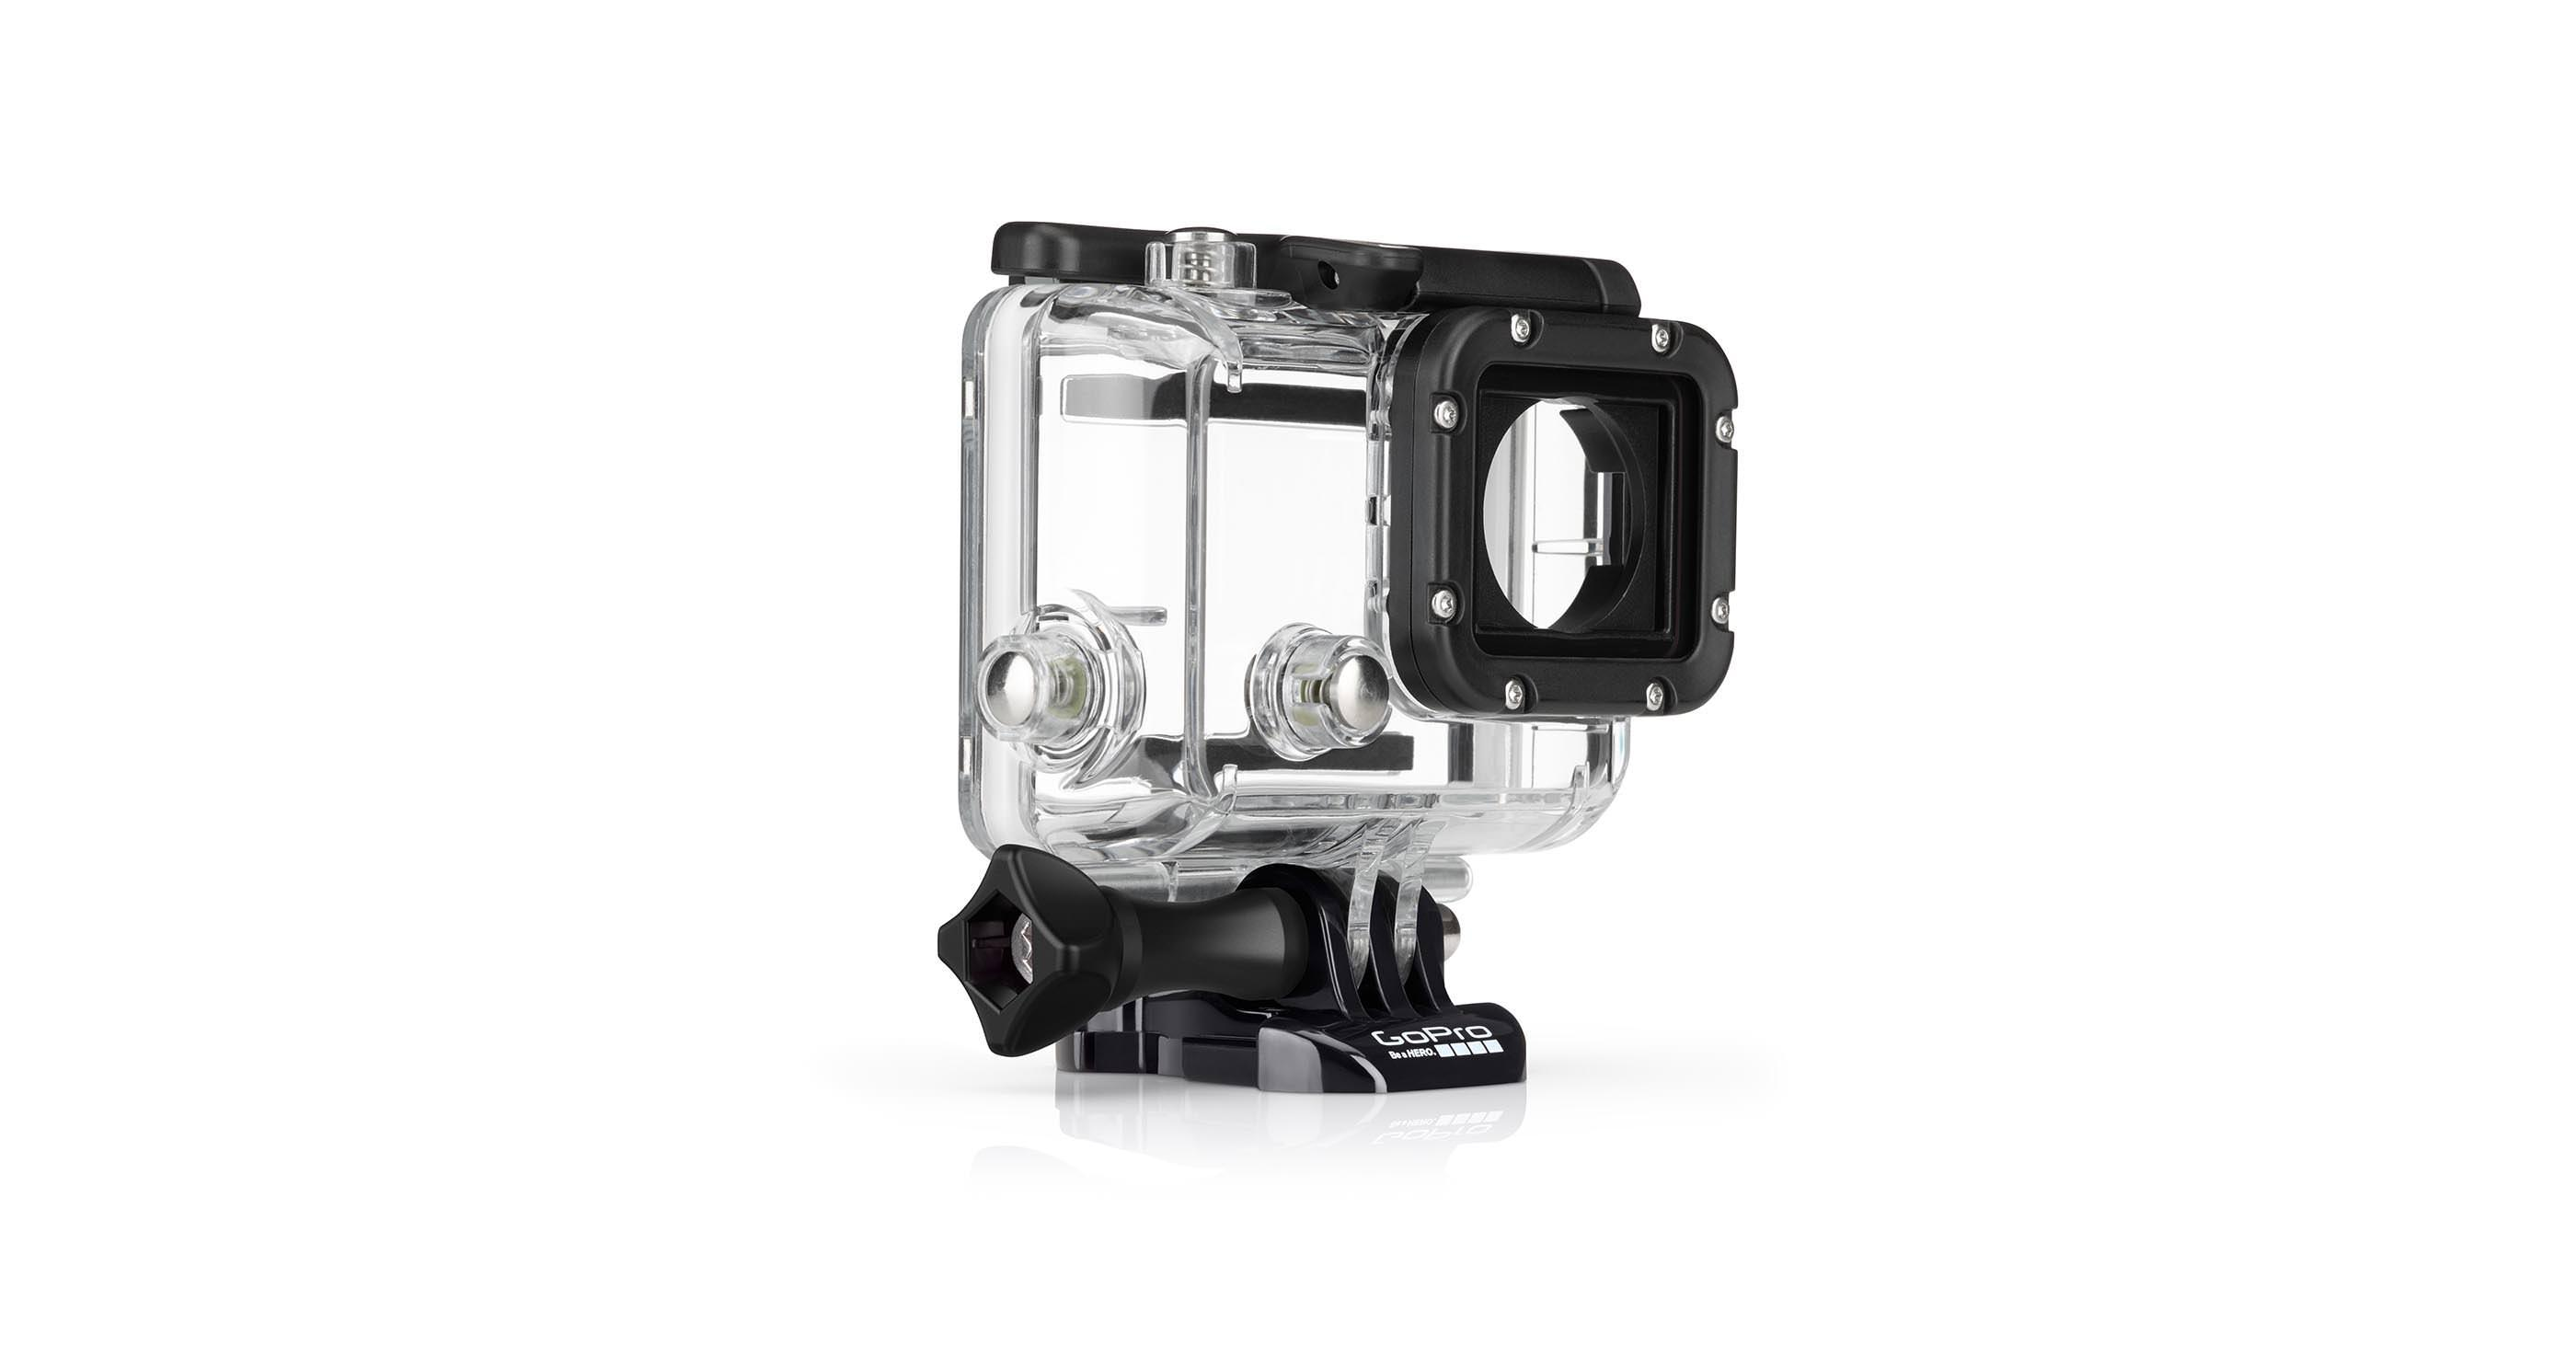 Underwater Standard Housing Case Lens Replacement for GoPro Hero 3 4